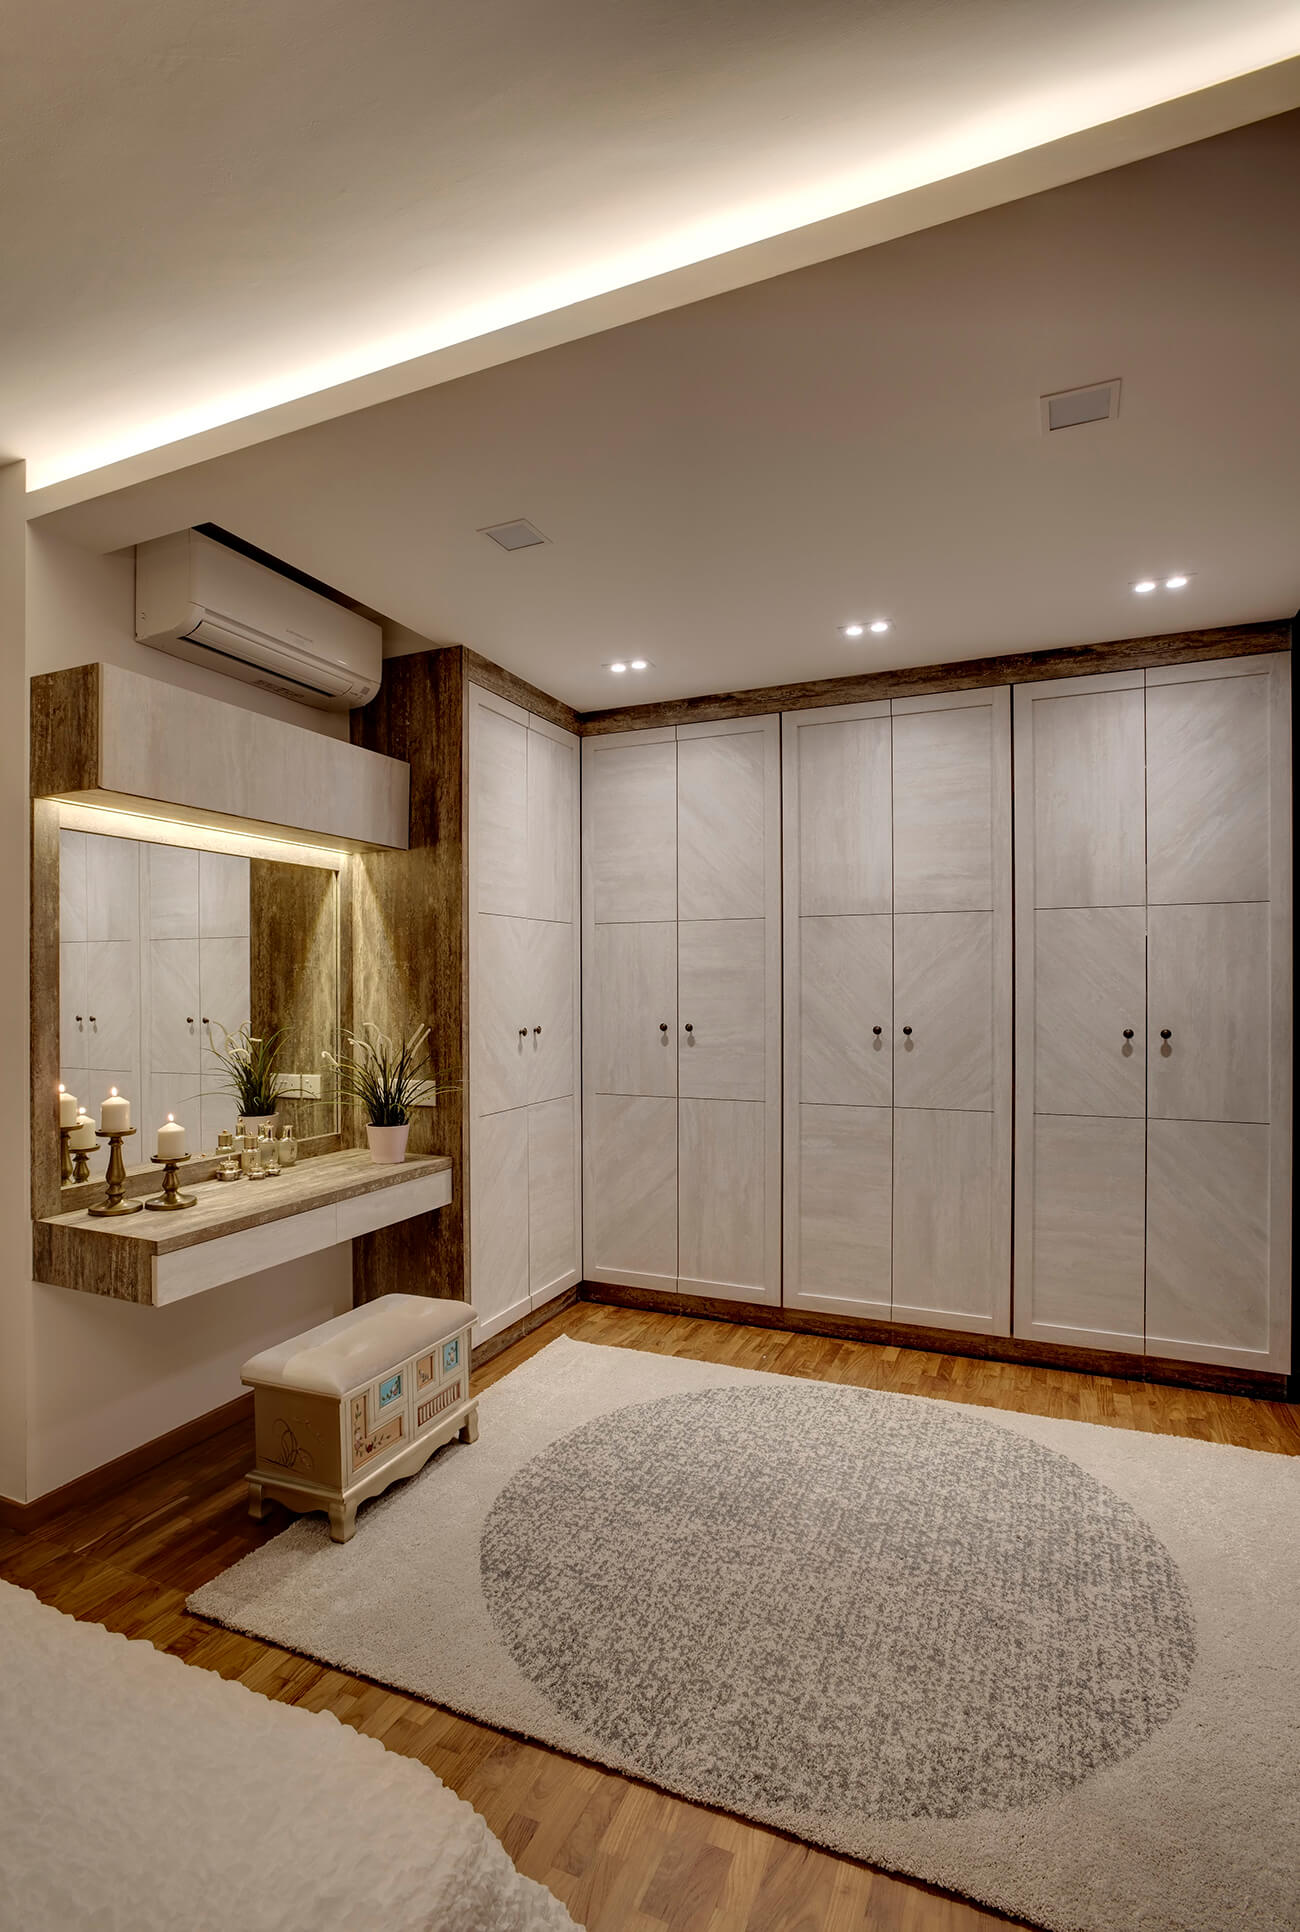 Renovation Contractor Singapore Recommended